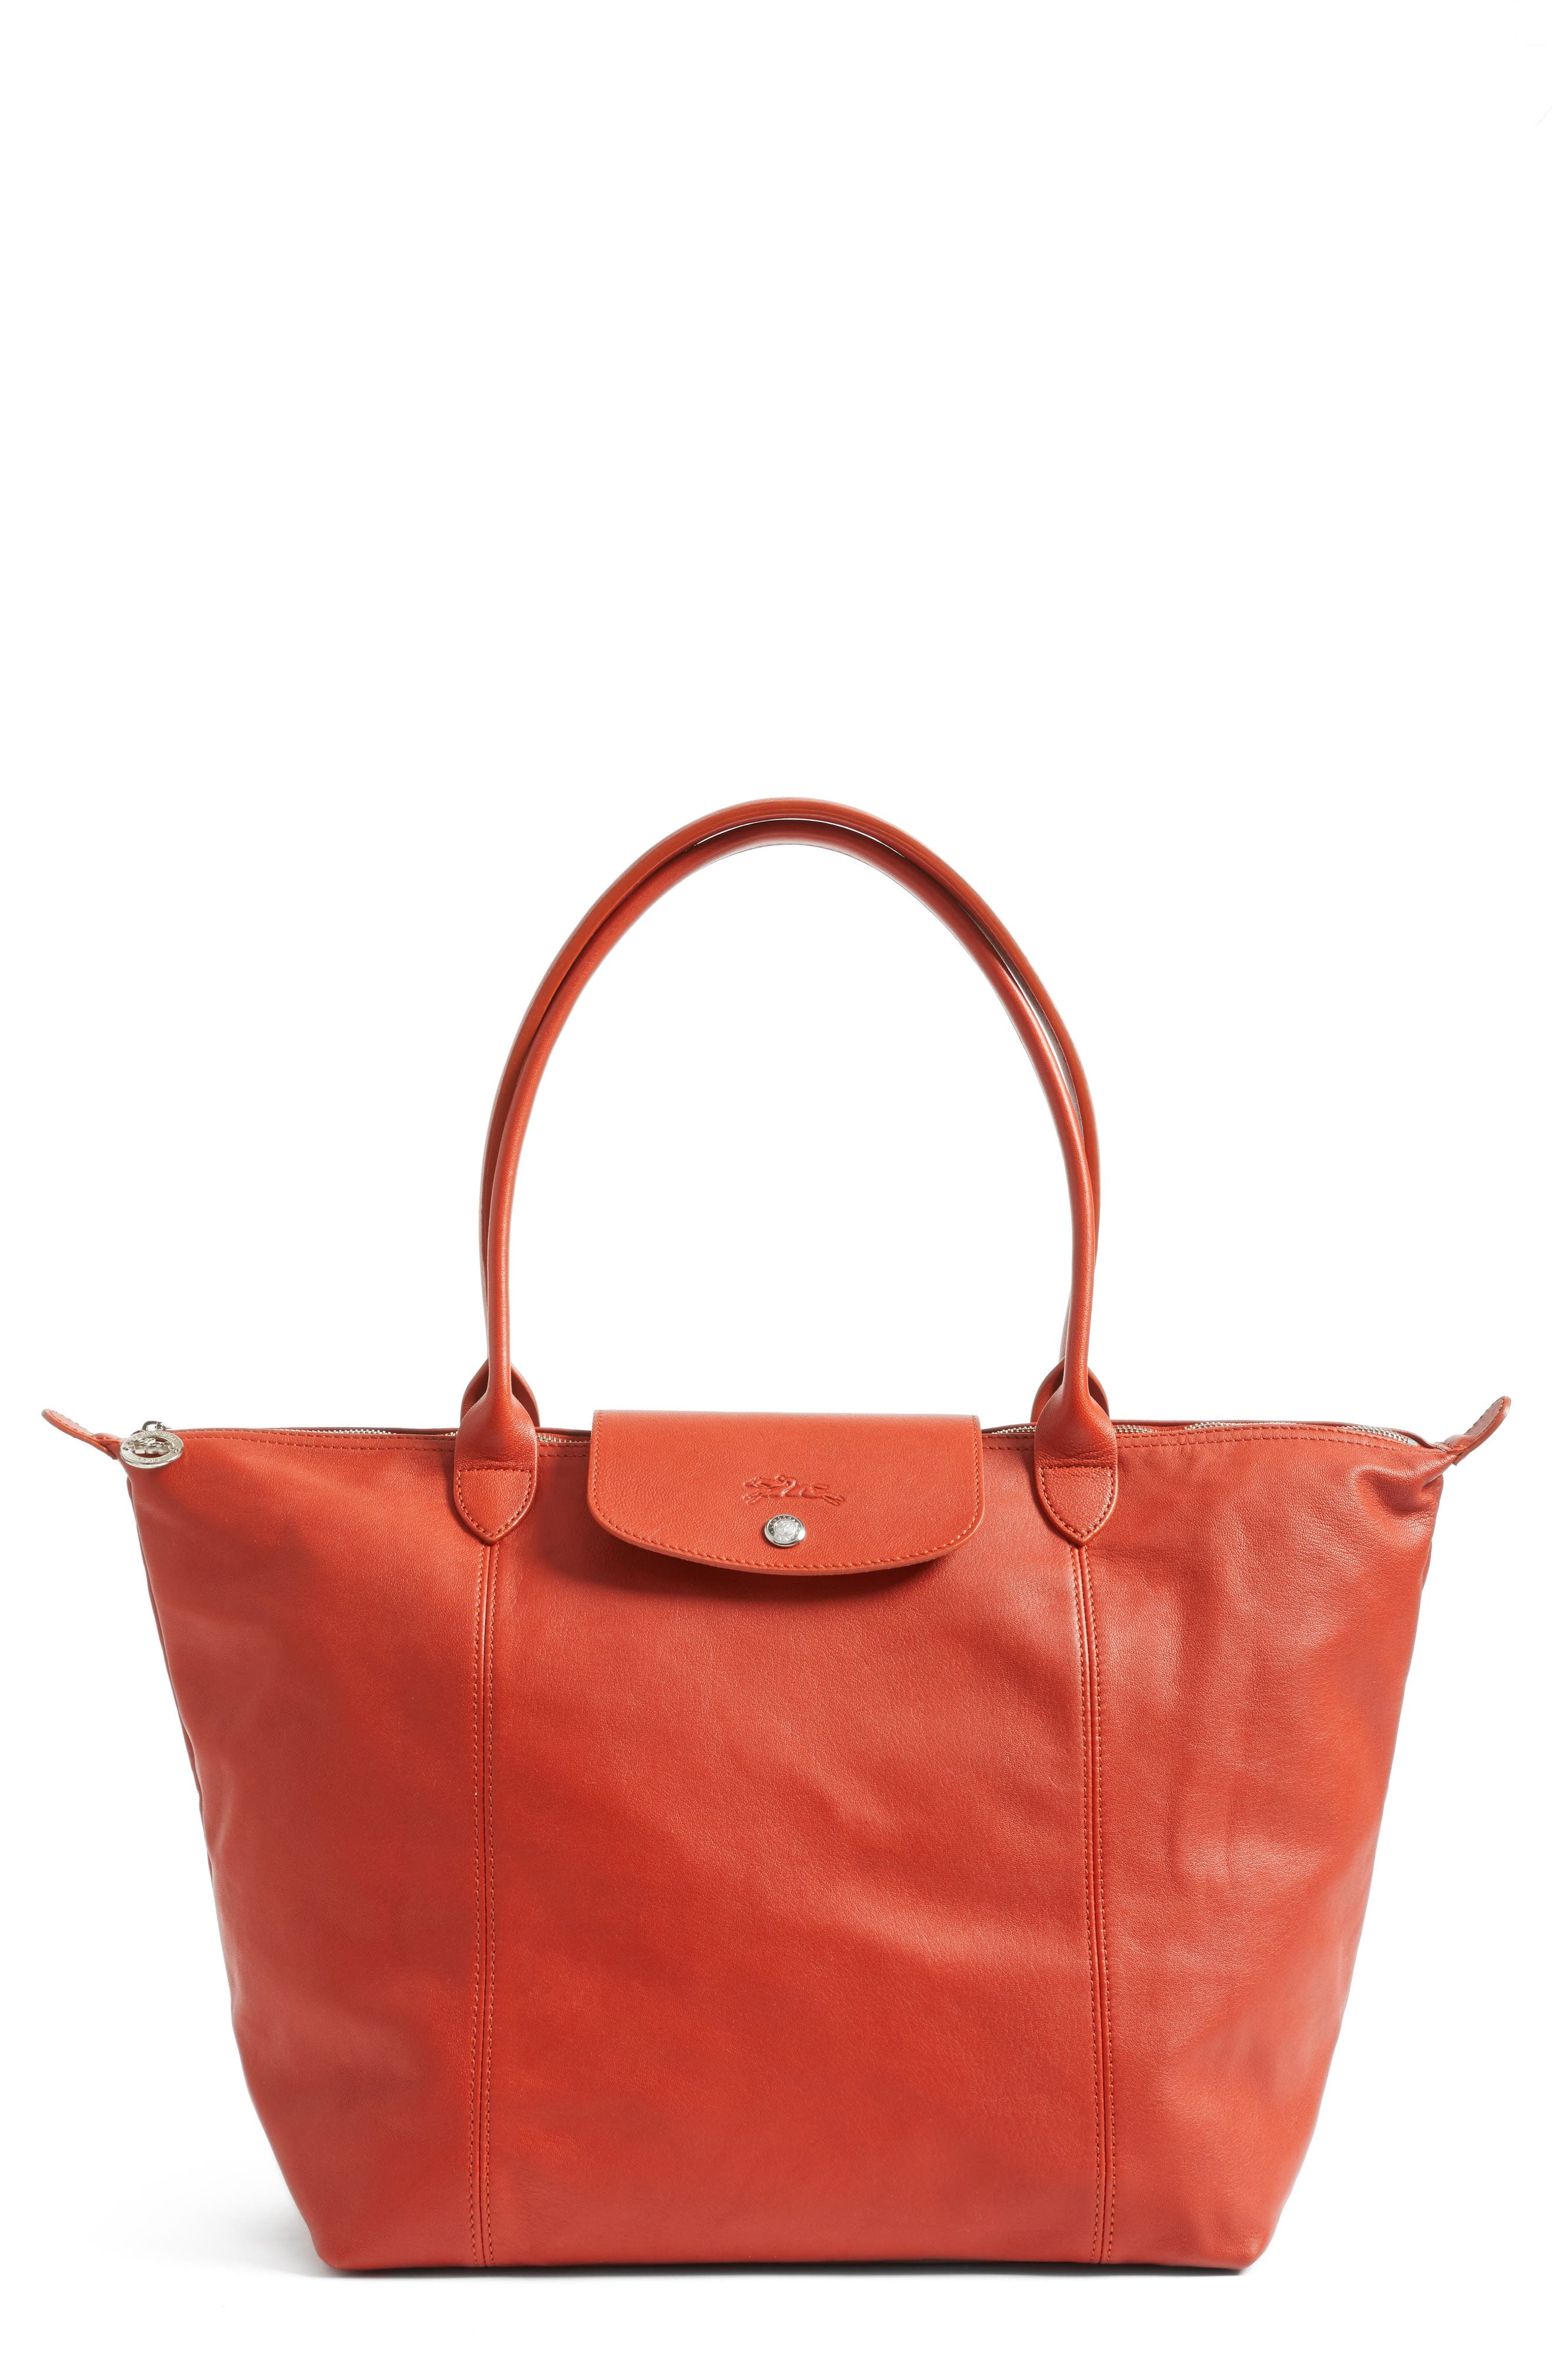 Alternate Image 1 Selected - Longchamp Le Pliage Cuir Leather Tote (Nordstrom Exclusive)